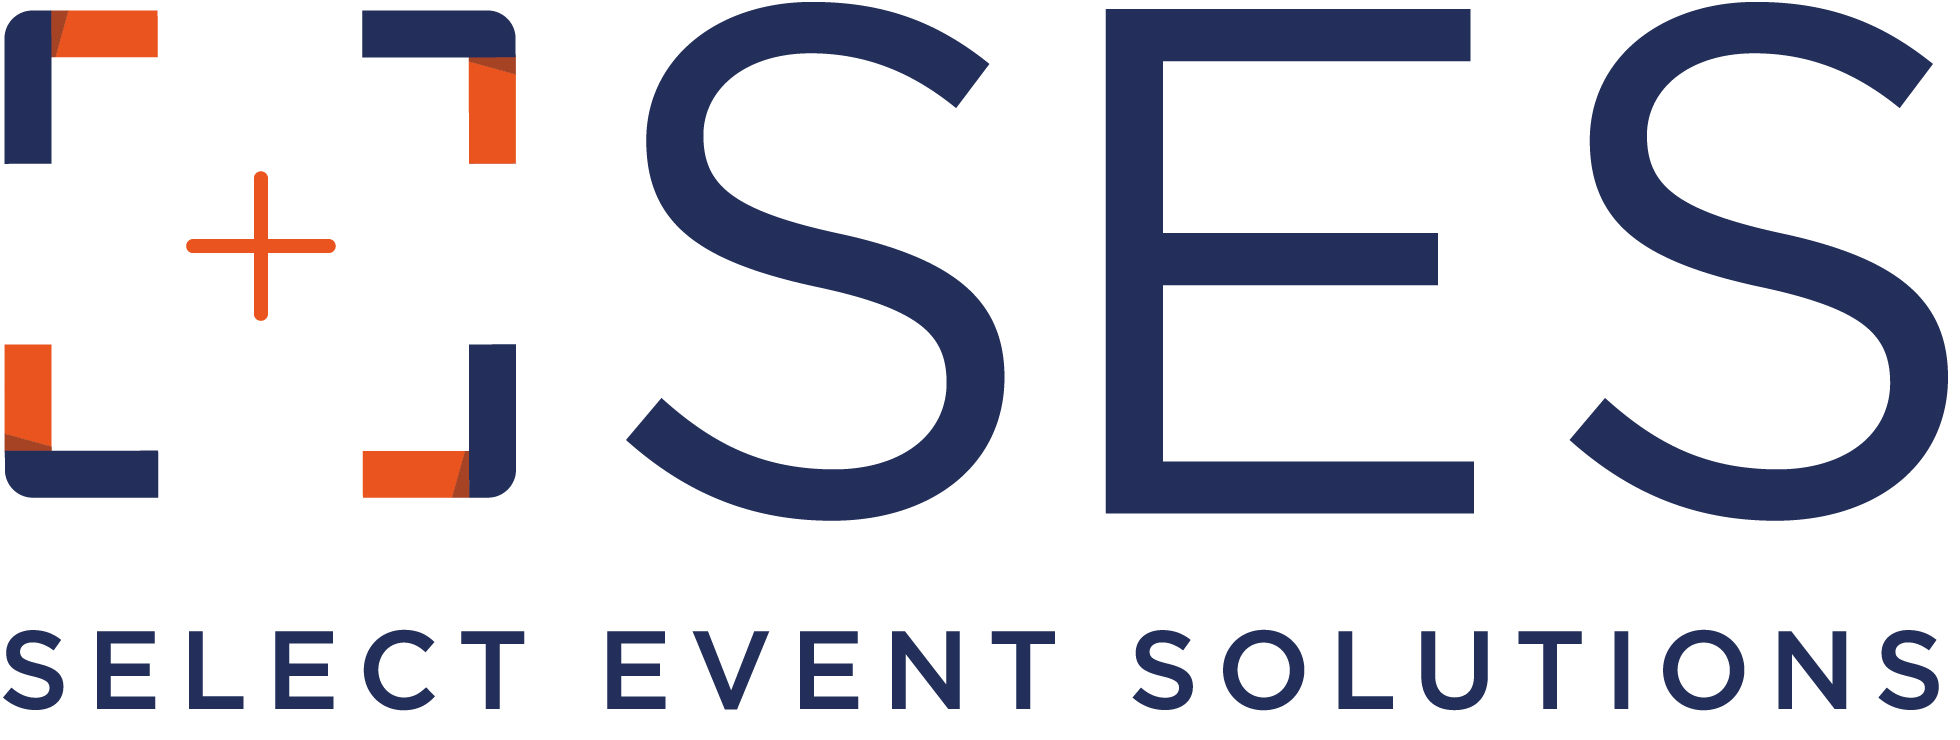 Select Event Solutions Ltd  Making Great Events Happen